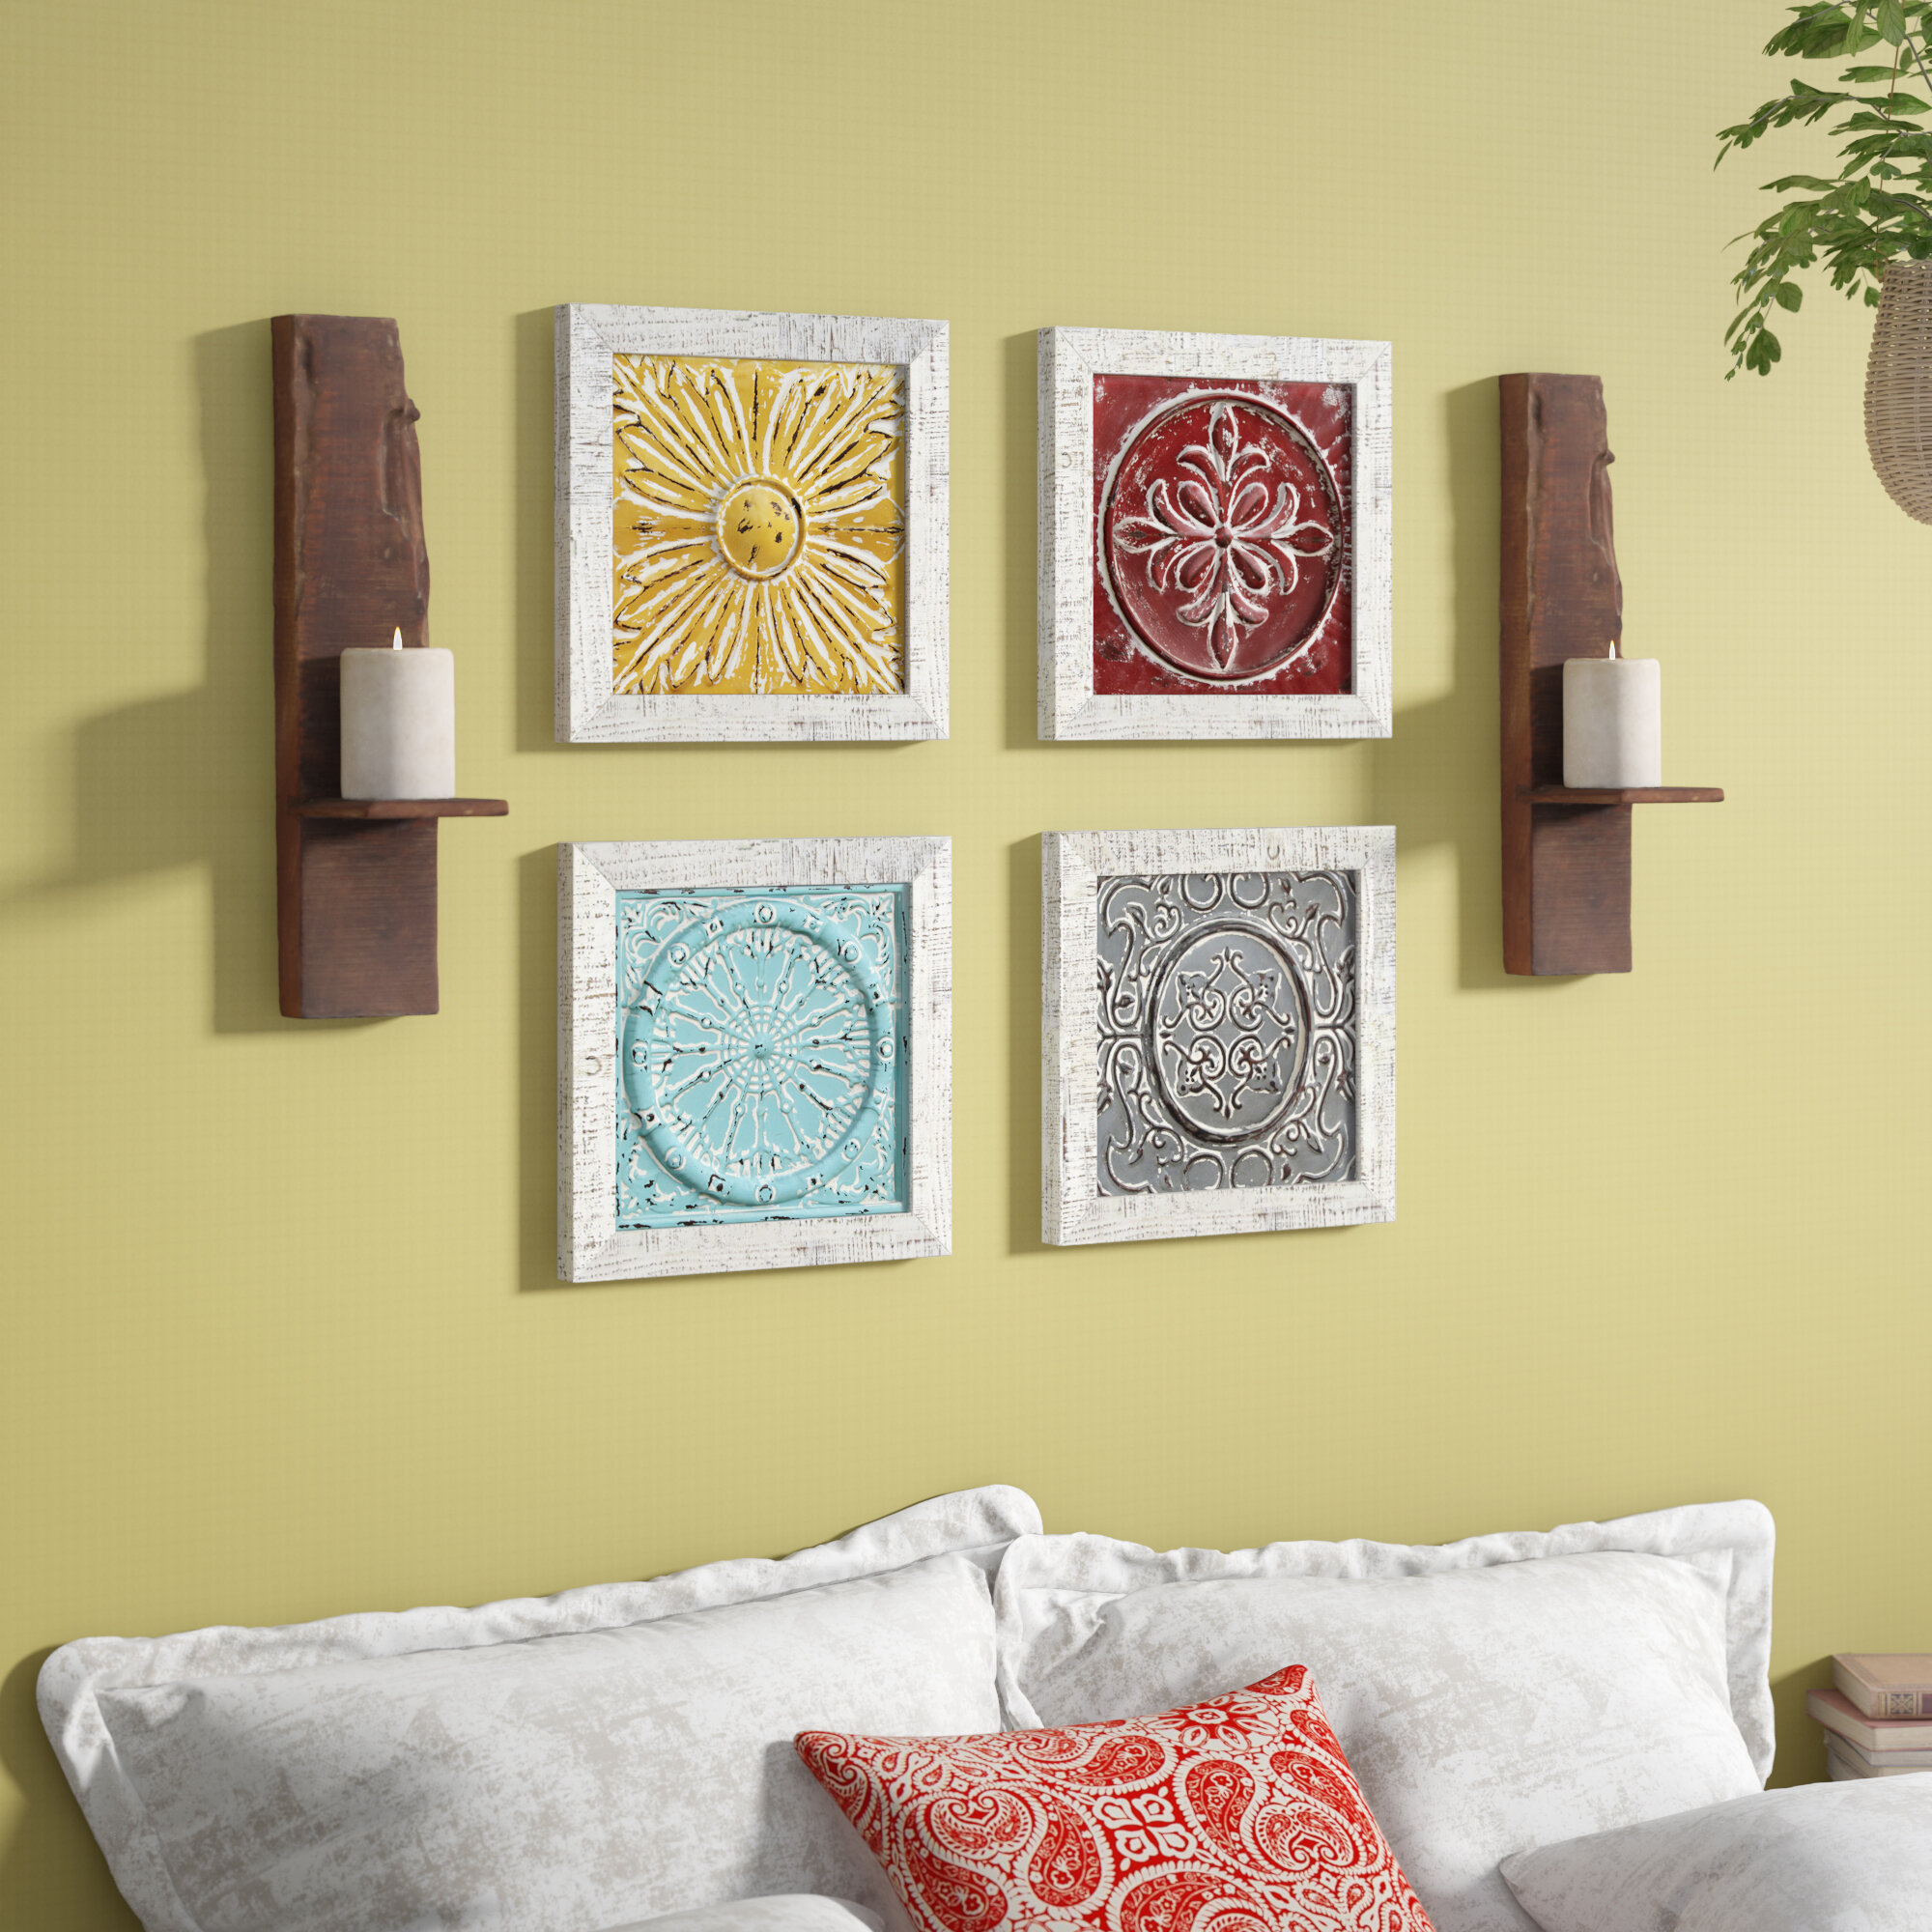 Amazing Teal And Brown Wall Decor Gallery - The Wall Art Decorations ...